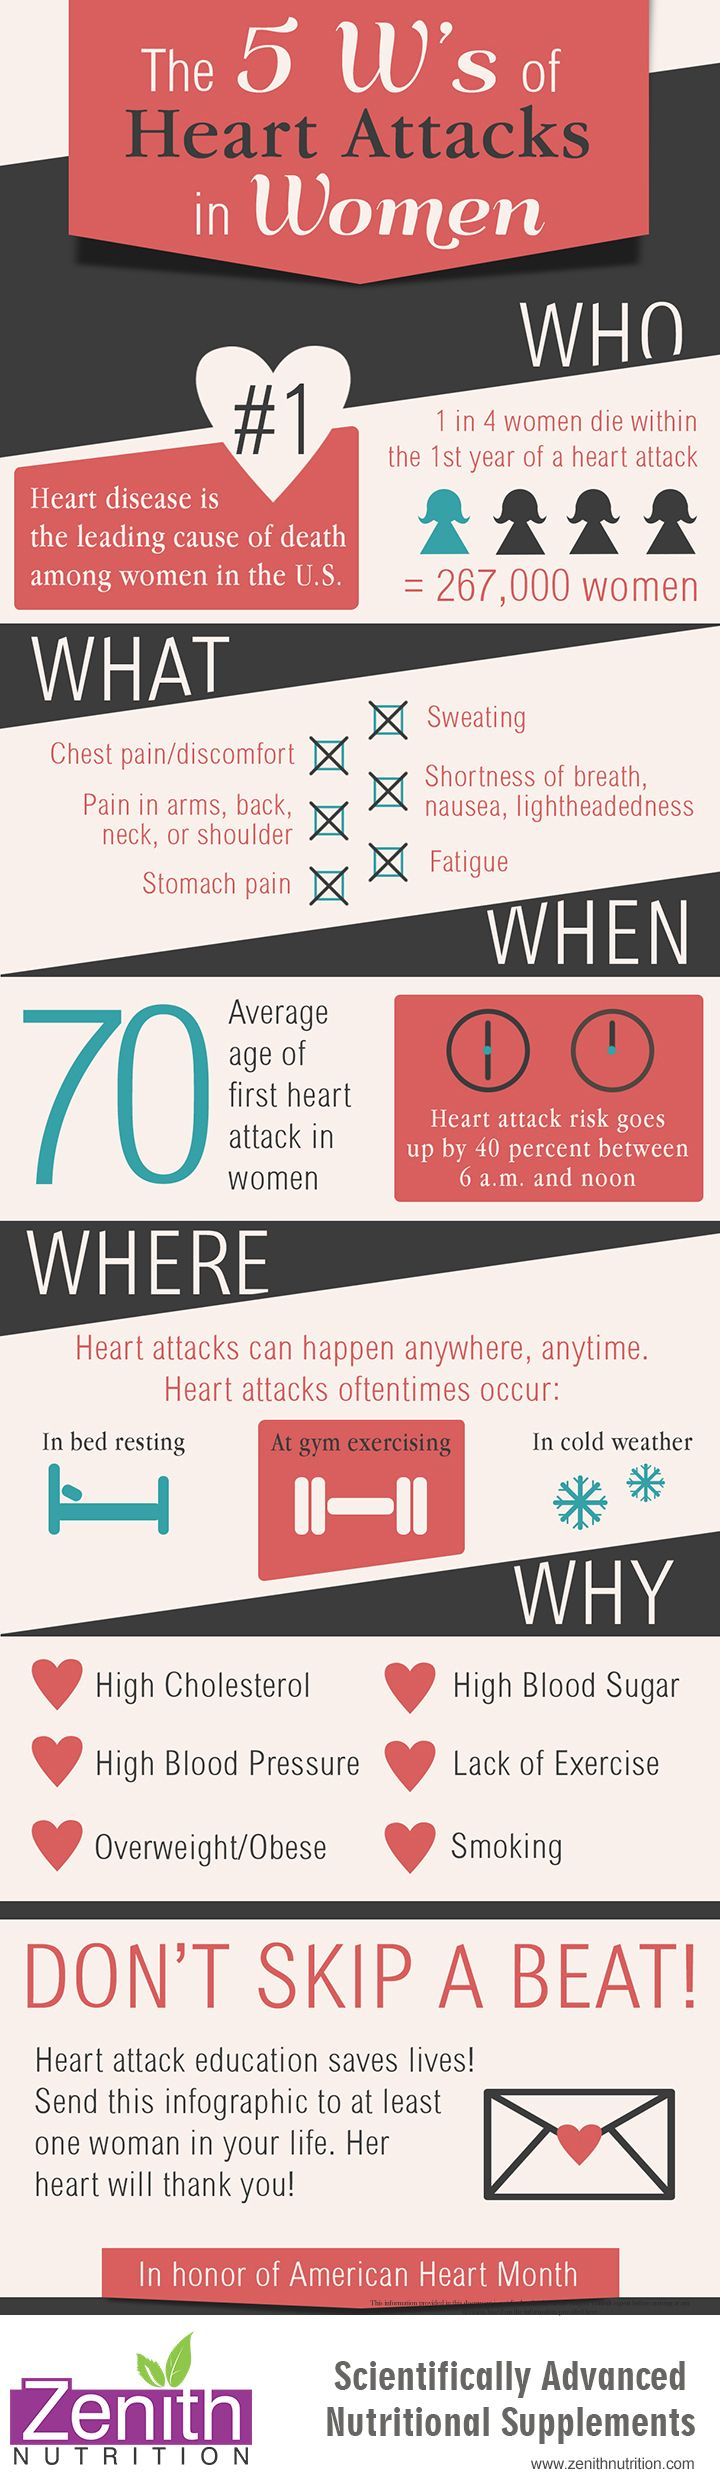 The 5 W's Of Heart Attacks In Women | Zenith Nutrition